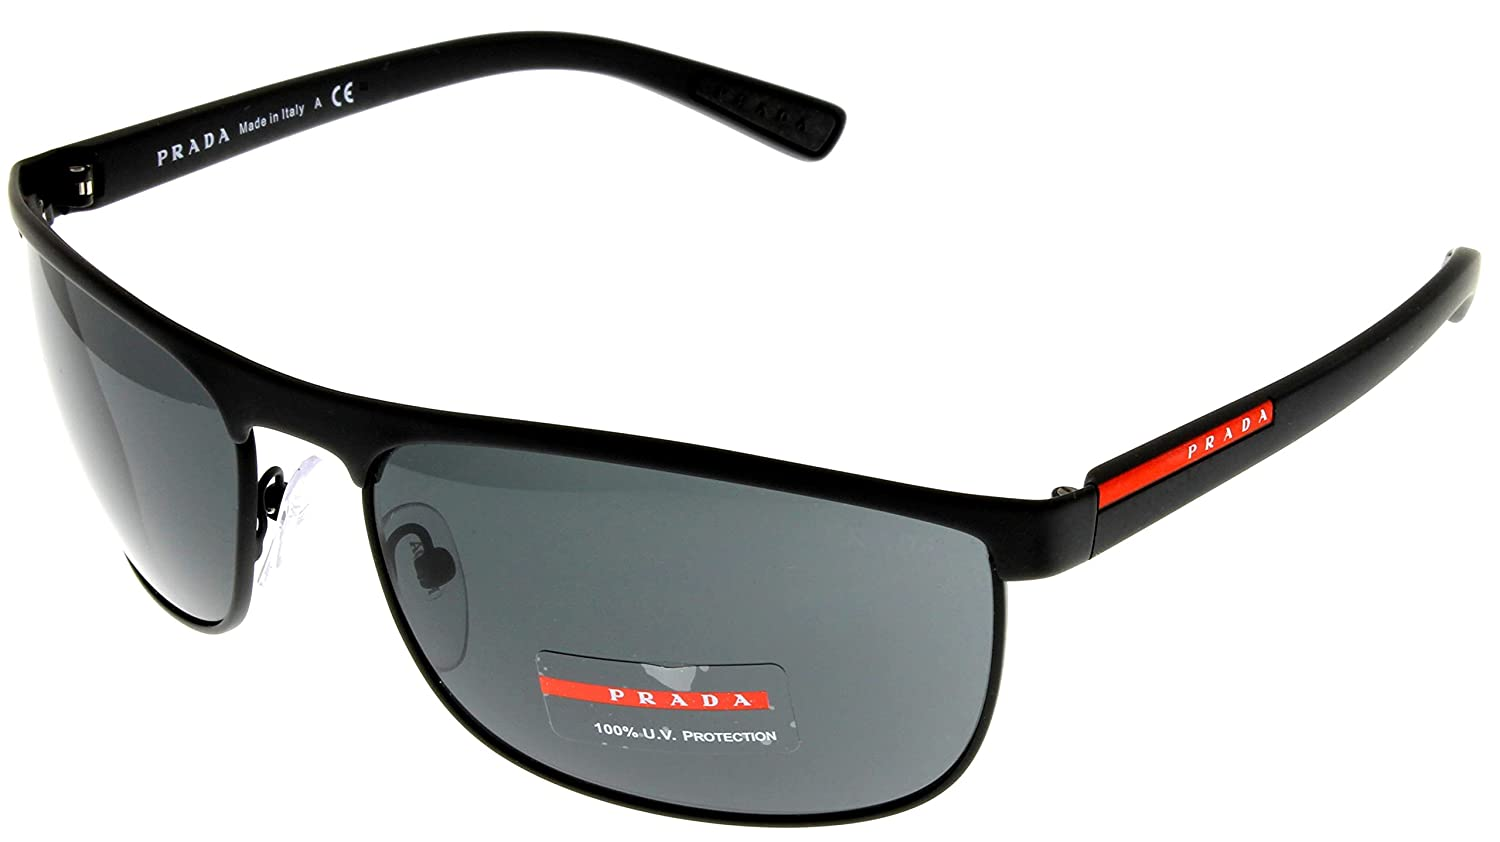 8f3644fa76e Amazon.com  Prada Sunglasses Men Black Rectangular 100% UV Protection  PS54QS DG01A1  Clothing